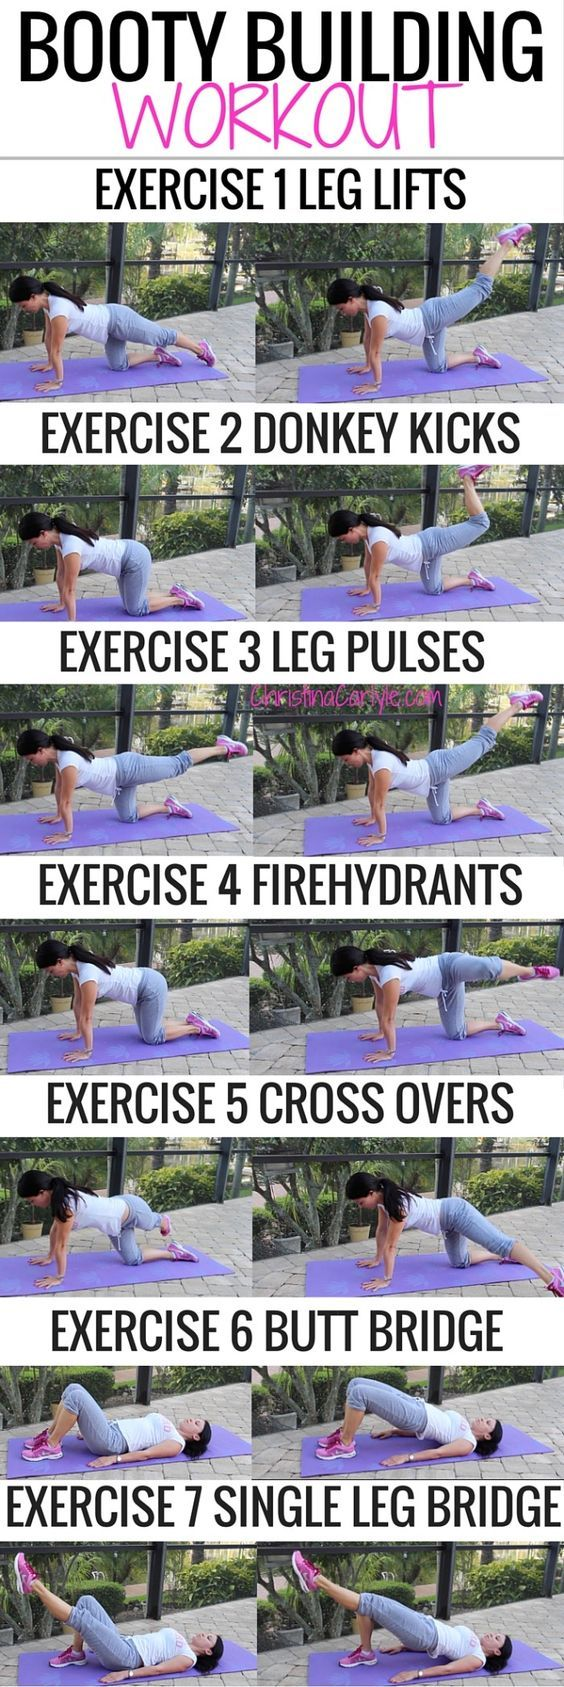 Repeat each exercise until you feel the burn... then do 10 more. Do 4 rounds, or sets of these exercises to complete your workout. For the best results, do this workout at least 2 times a week. Easy peasy!